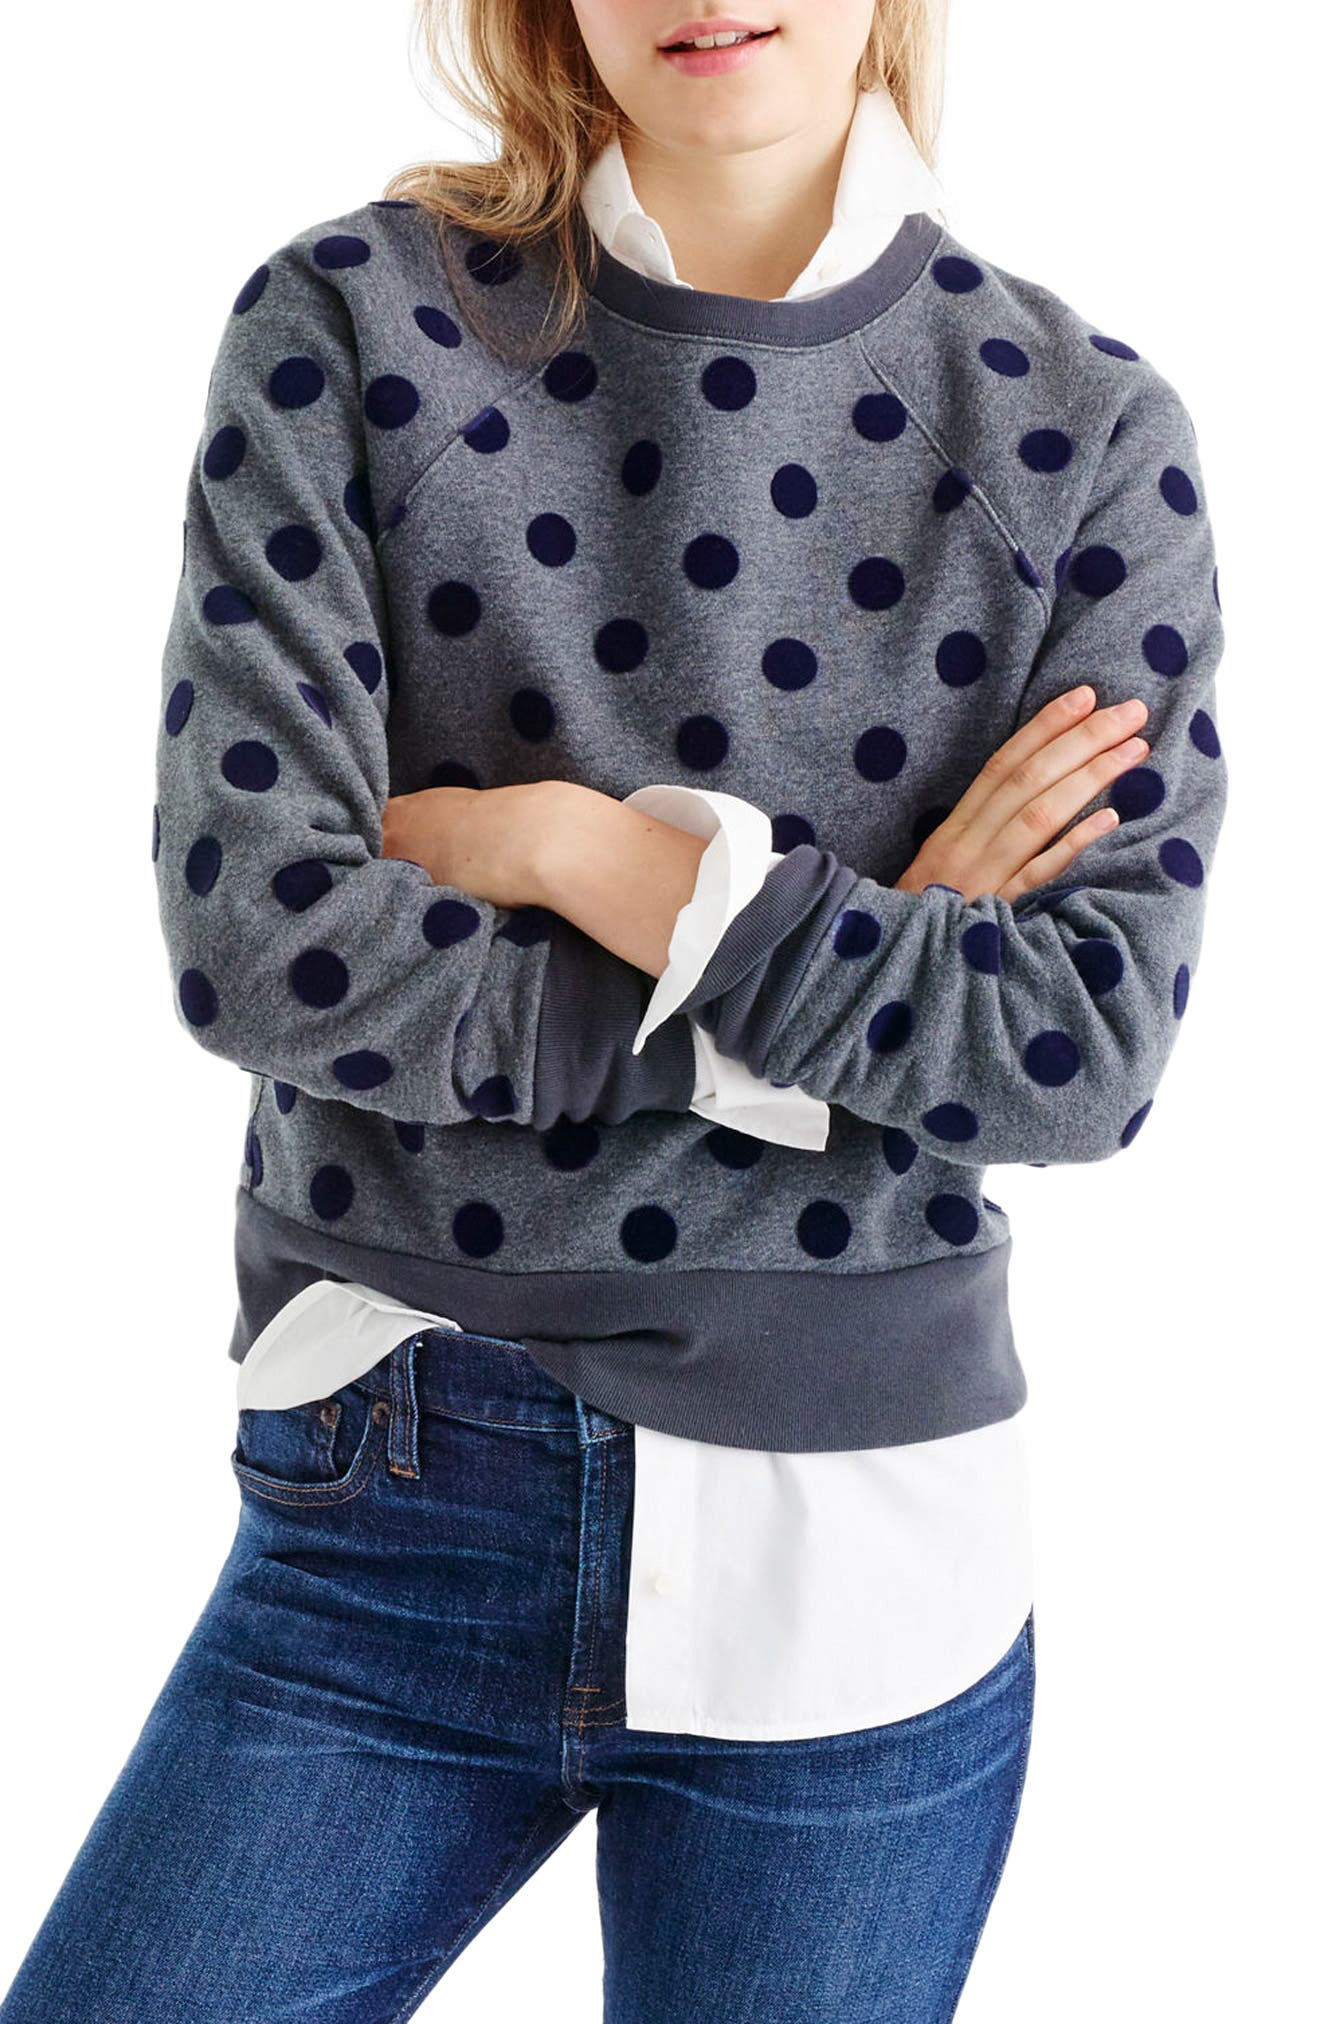 Alternate Image 1 Selected - J.Crew Textured Polka Dot Raglan Sweatshirt